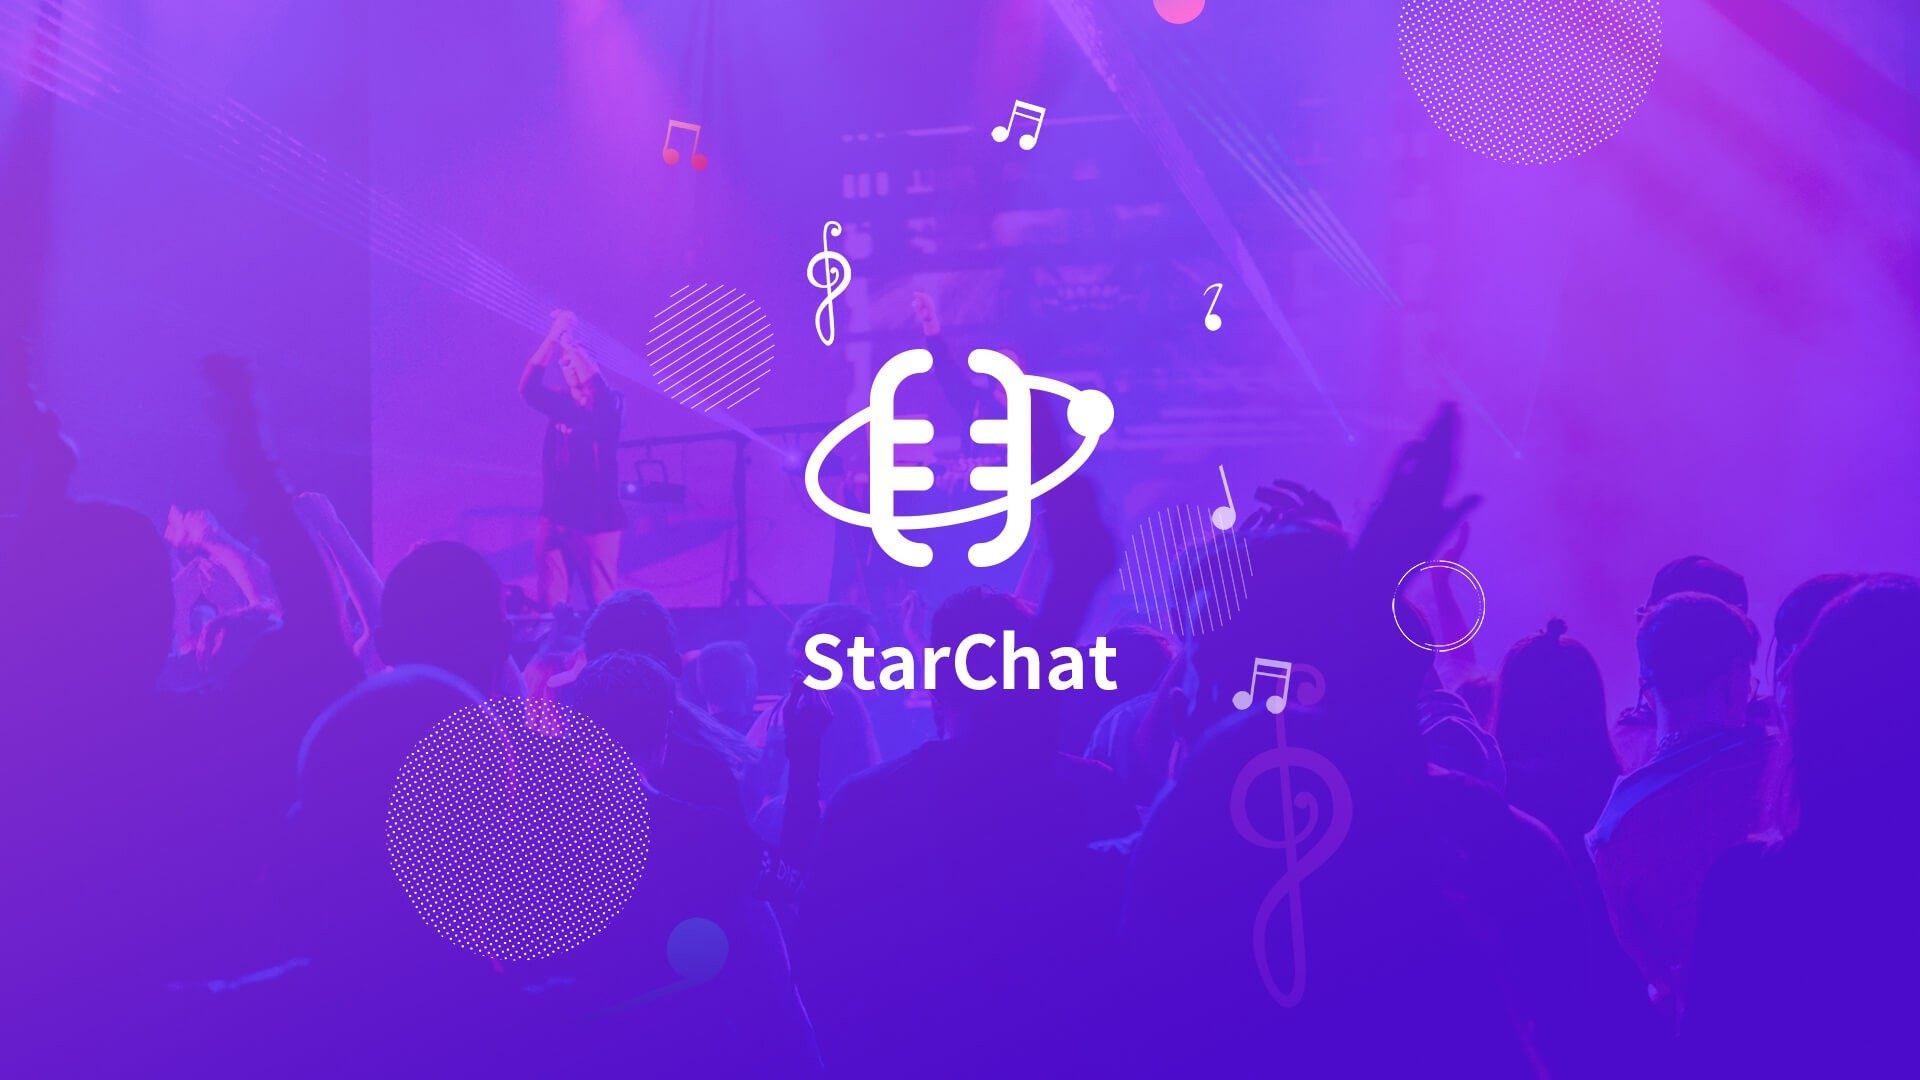 StarChat-Group App - Communicate With Family, Friends, And Strangers Online For Free